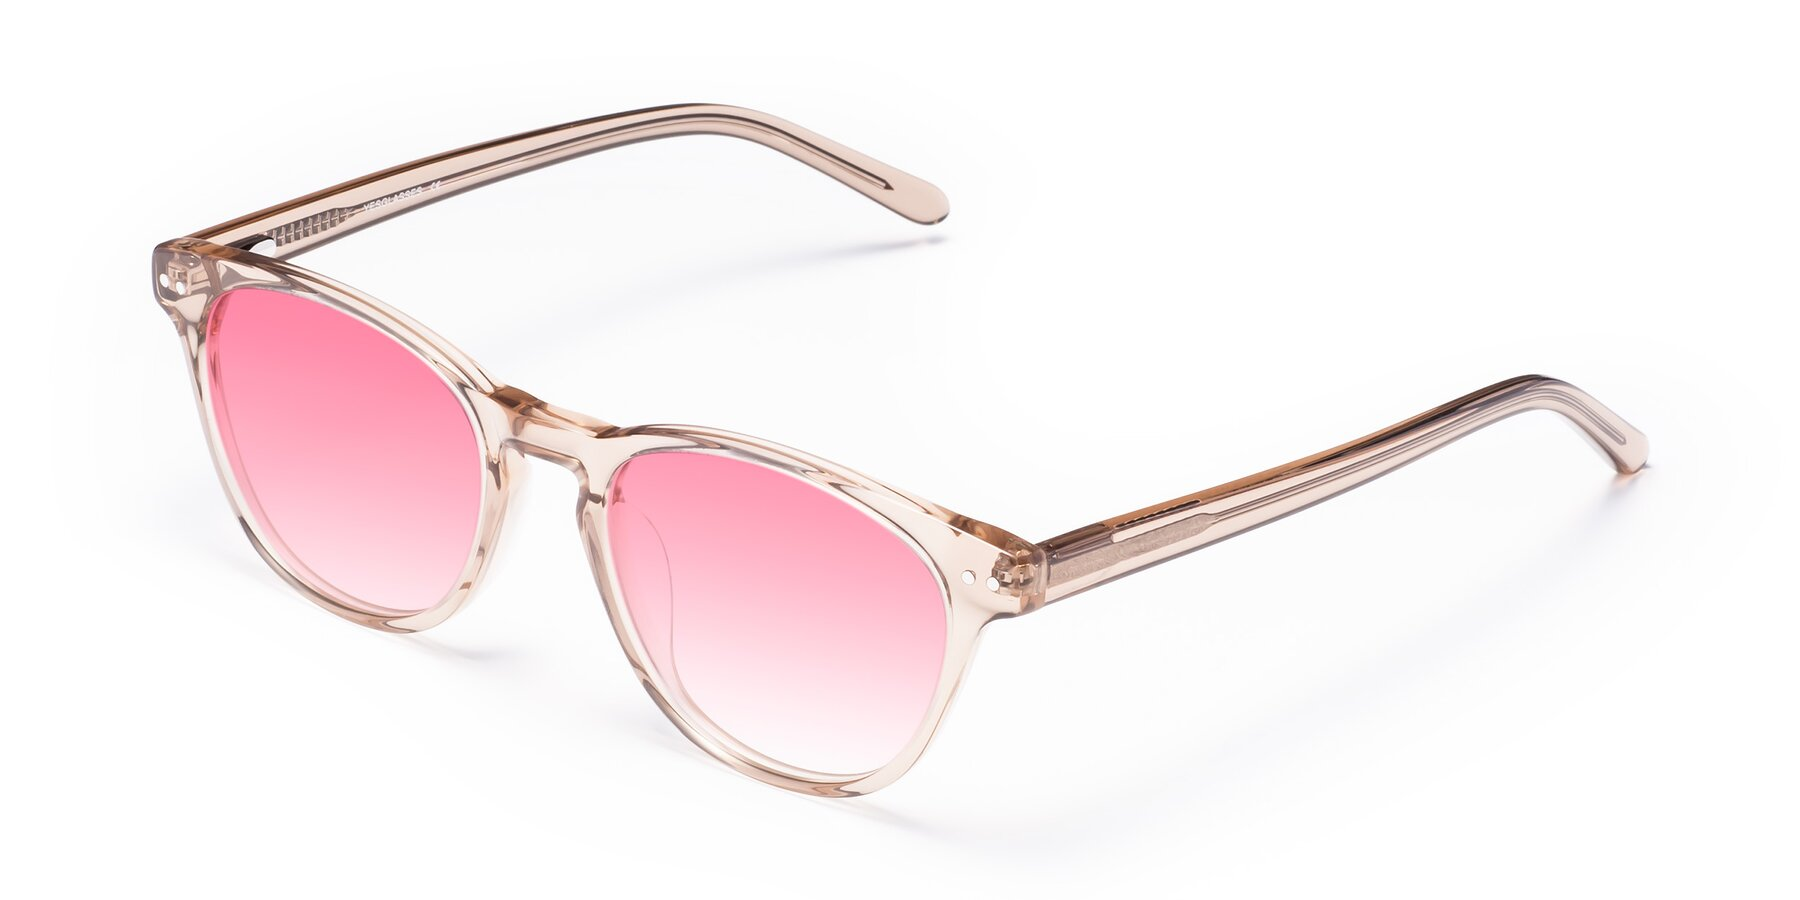 Angle of Blaze in light Brown with Pink Gradient Lenses